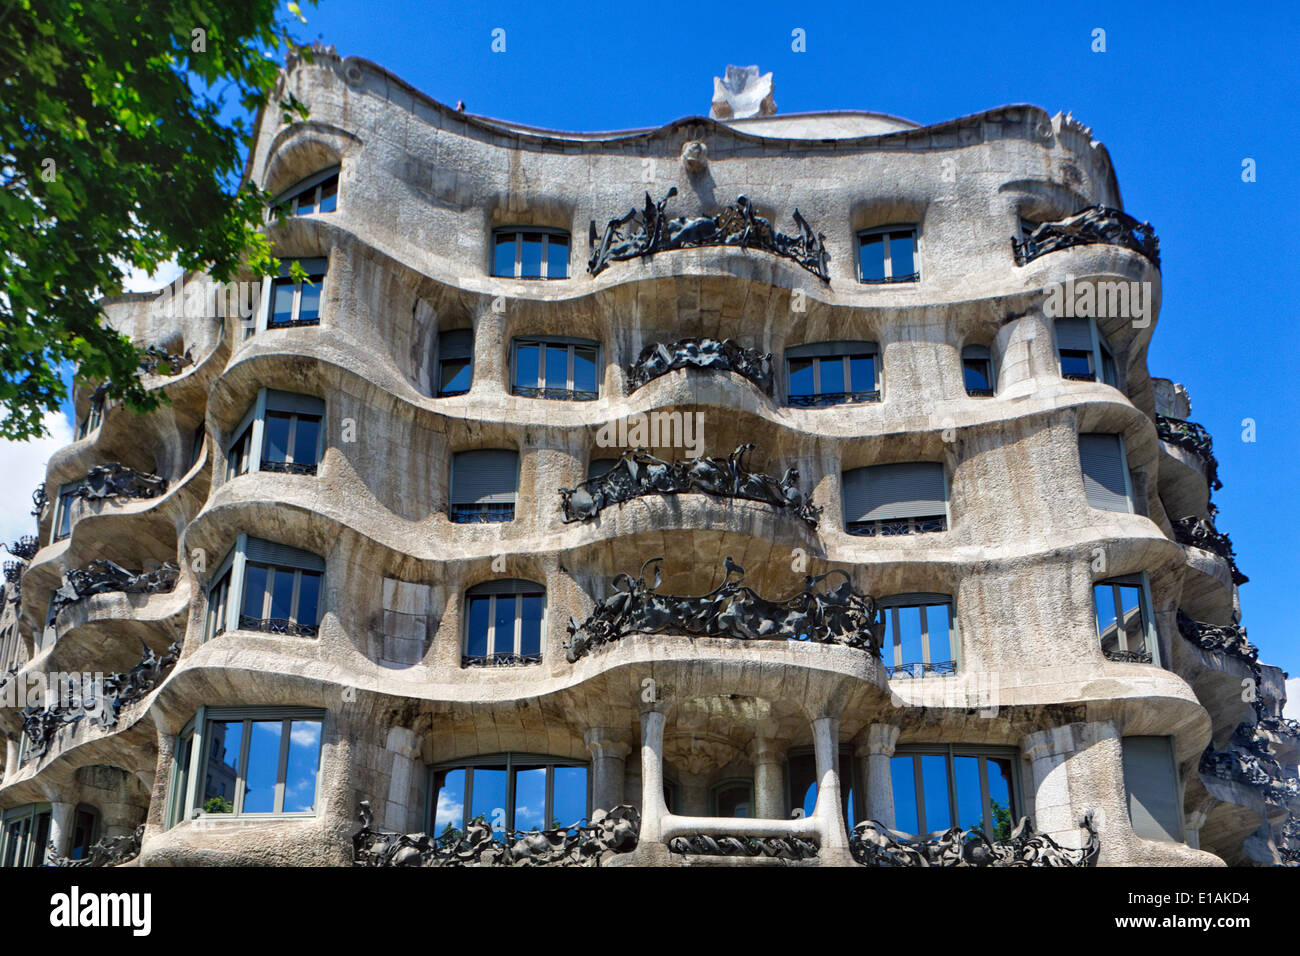 Low Angle View of a building Facade, Casa Mila (La Pedrerea), Barcelone, Catalogne, Espagne Photo Stock